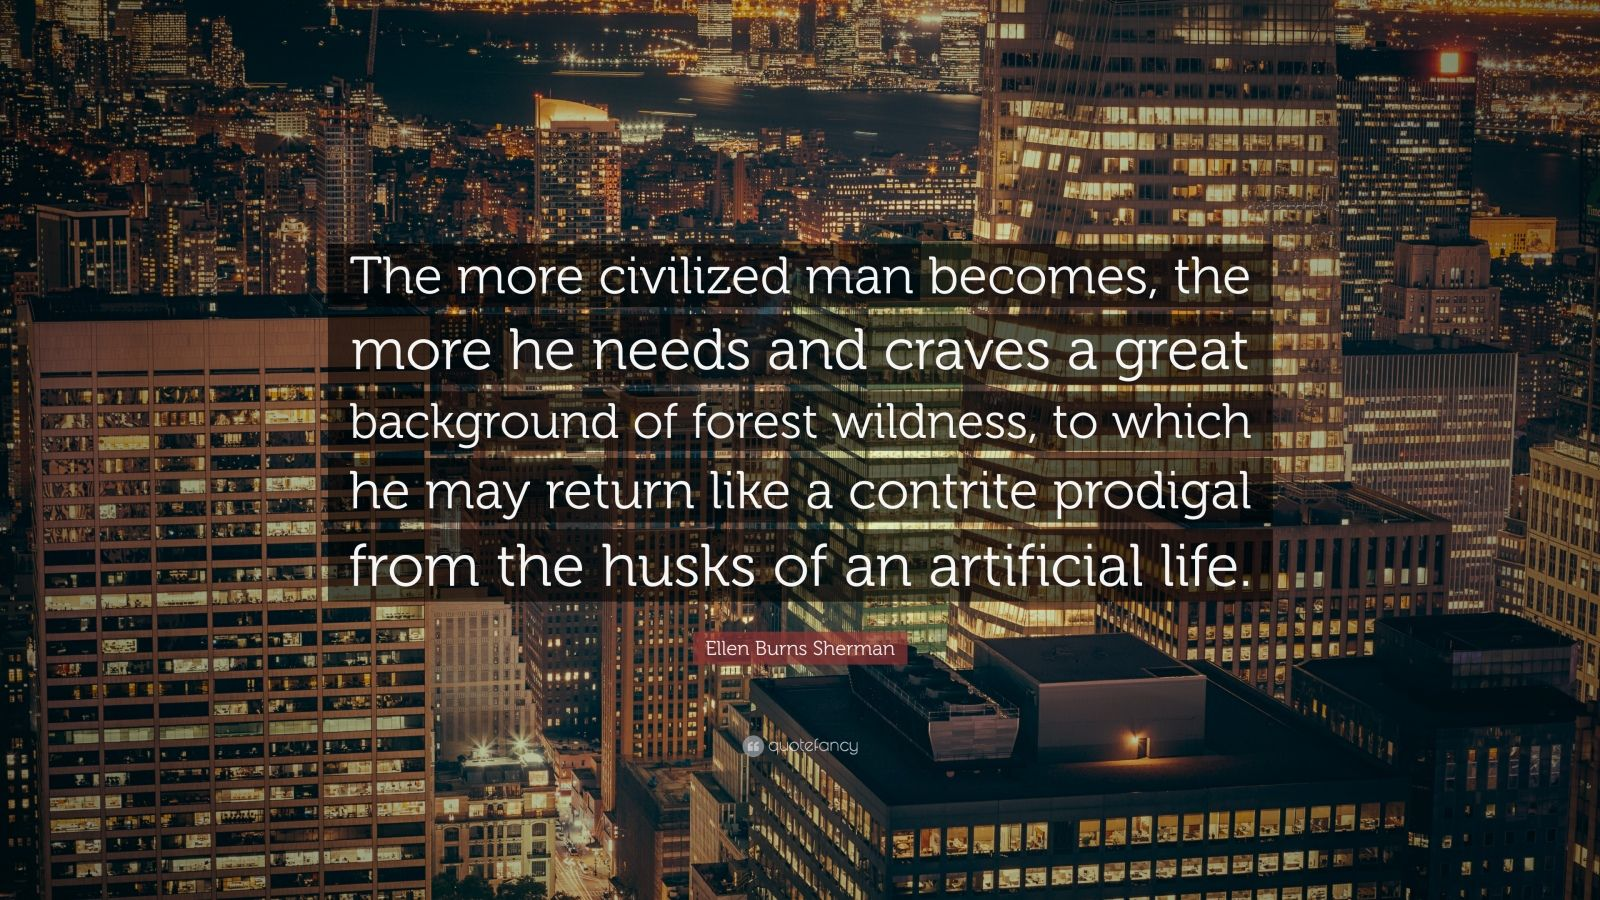 """Ellen Burns Sherman Quote: """"The more civilized man becomes, the more he needs and craves a great background of forest wildness, to which he may return like a contrite prodigal from the husks of an artificial life."""""""